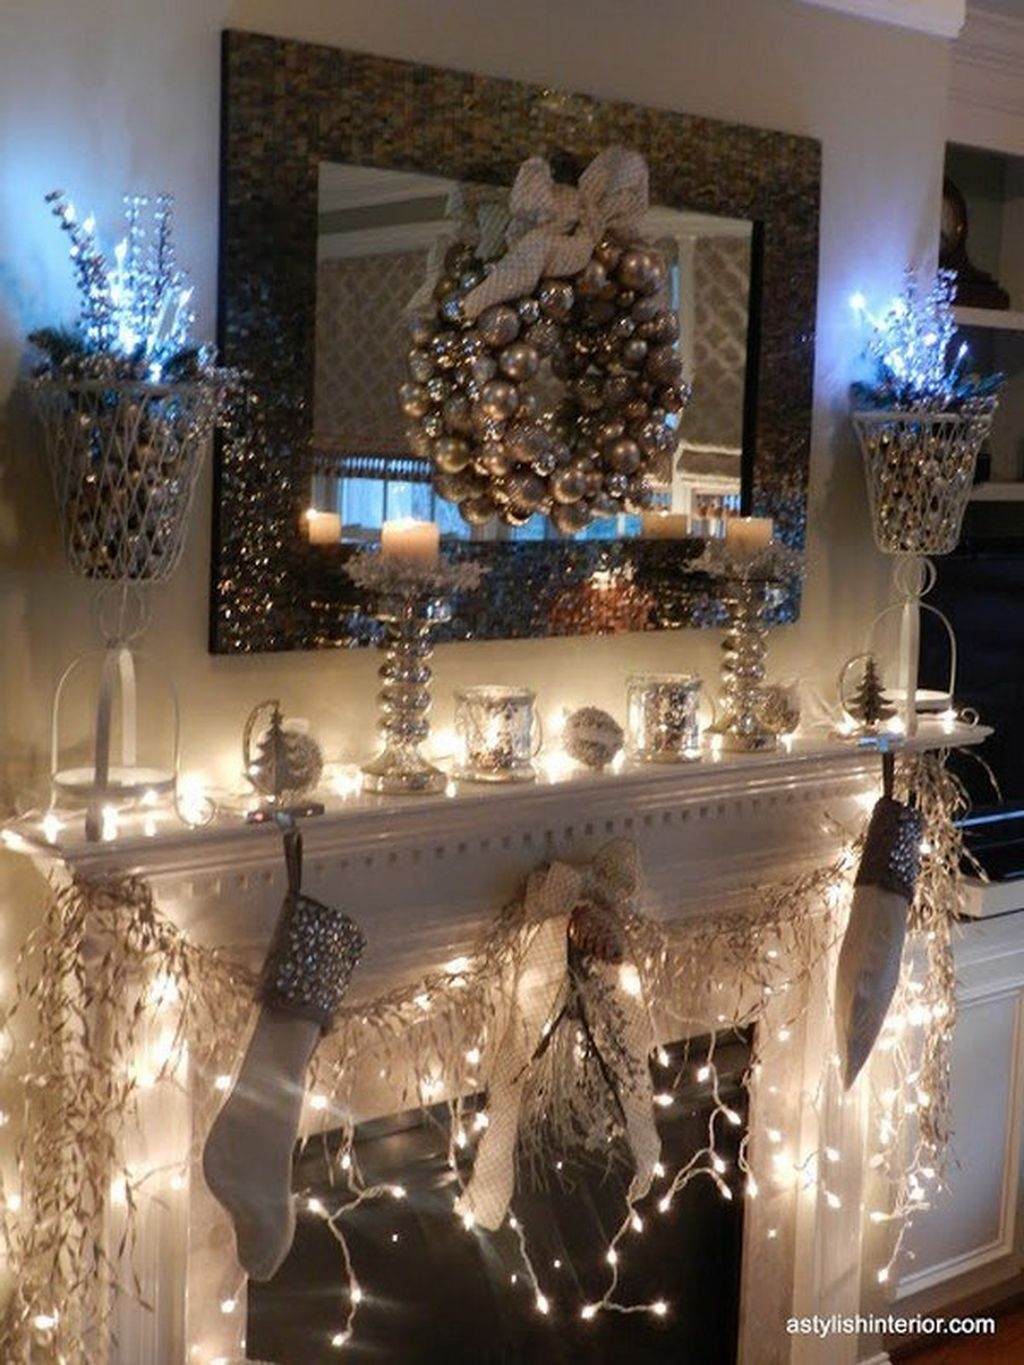 Cozy Fireplace Christmas Decoration Ideas To Makes Your Room Keep Warm36